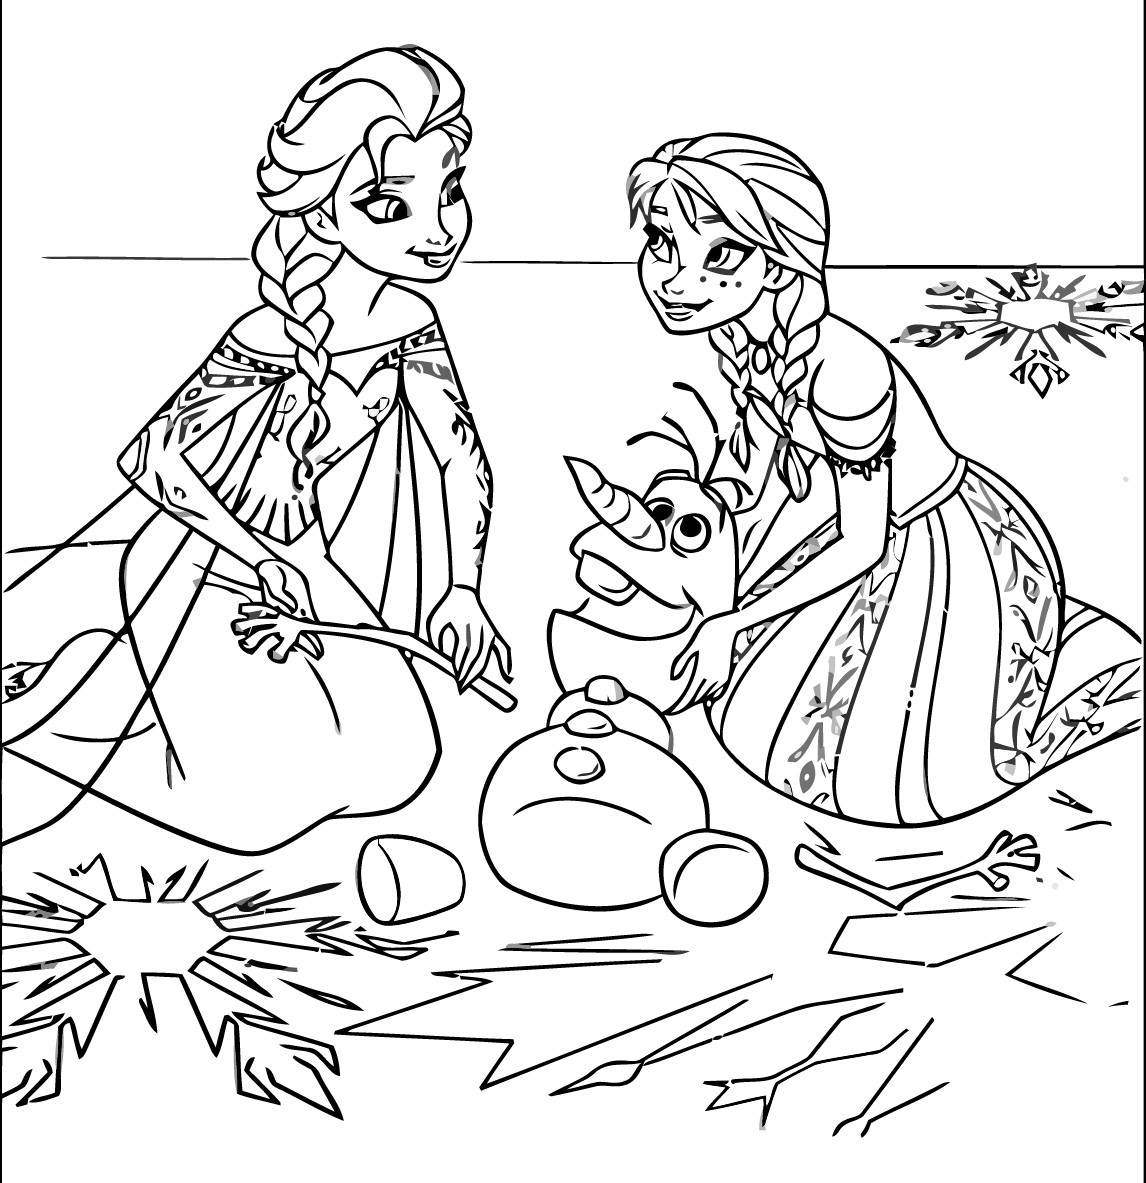 Inspiring Frozen Coloring Pages Line Colouring to Cure Generous Gallery Of 13 Kid Coloring Pages Line Gallery